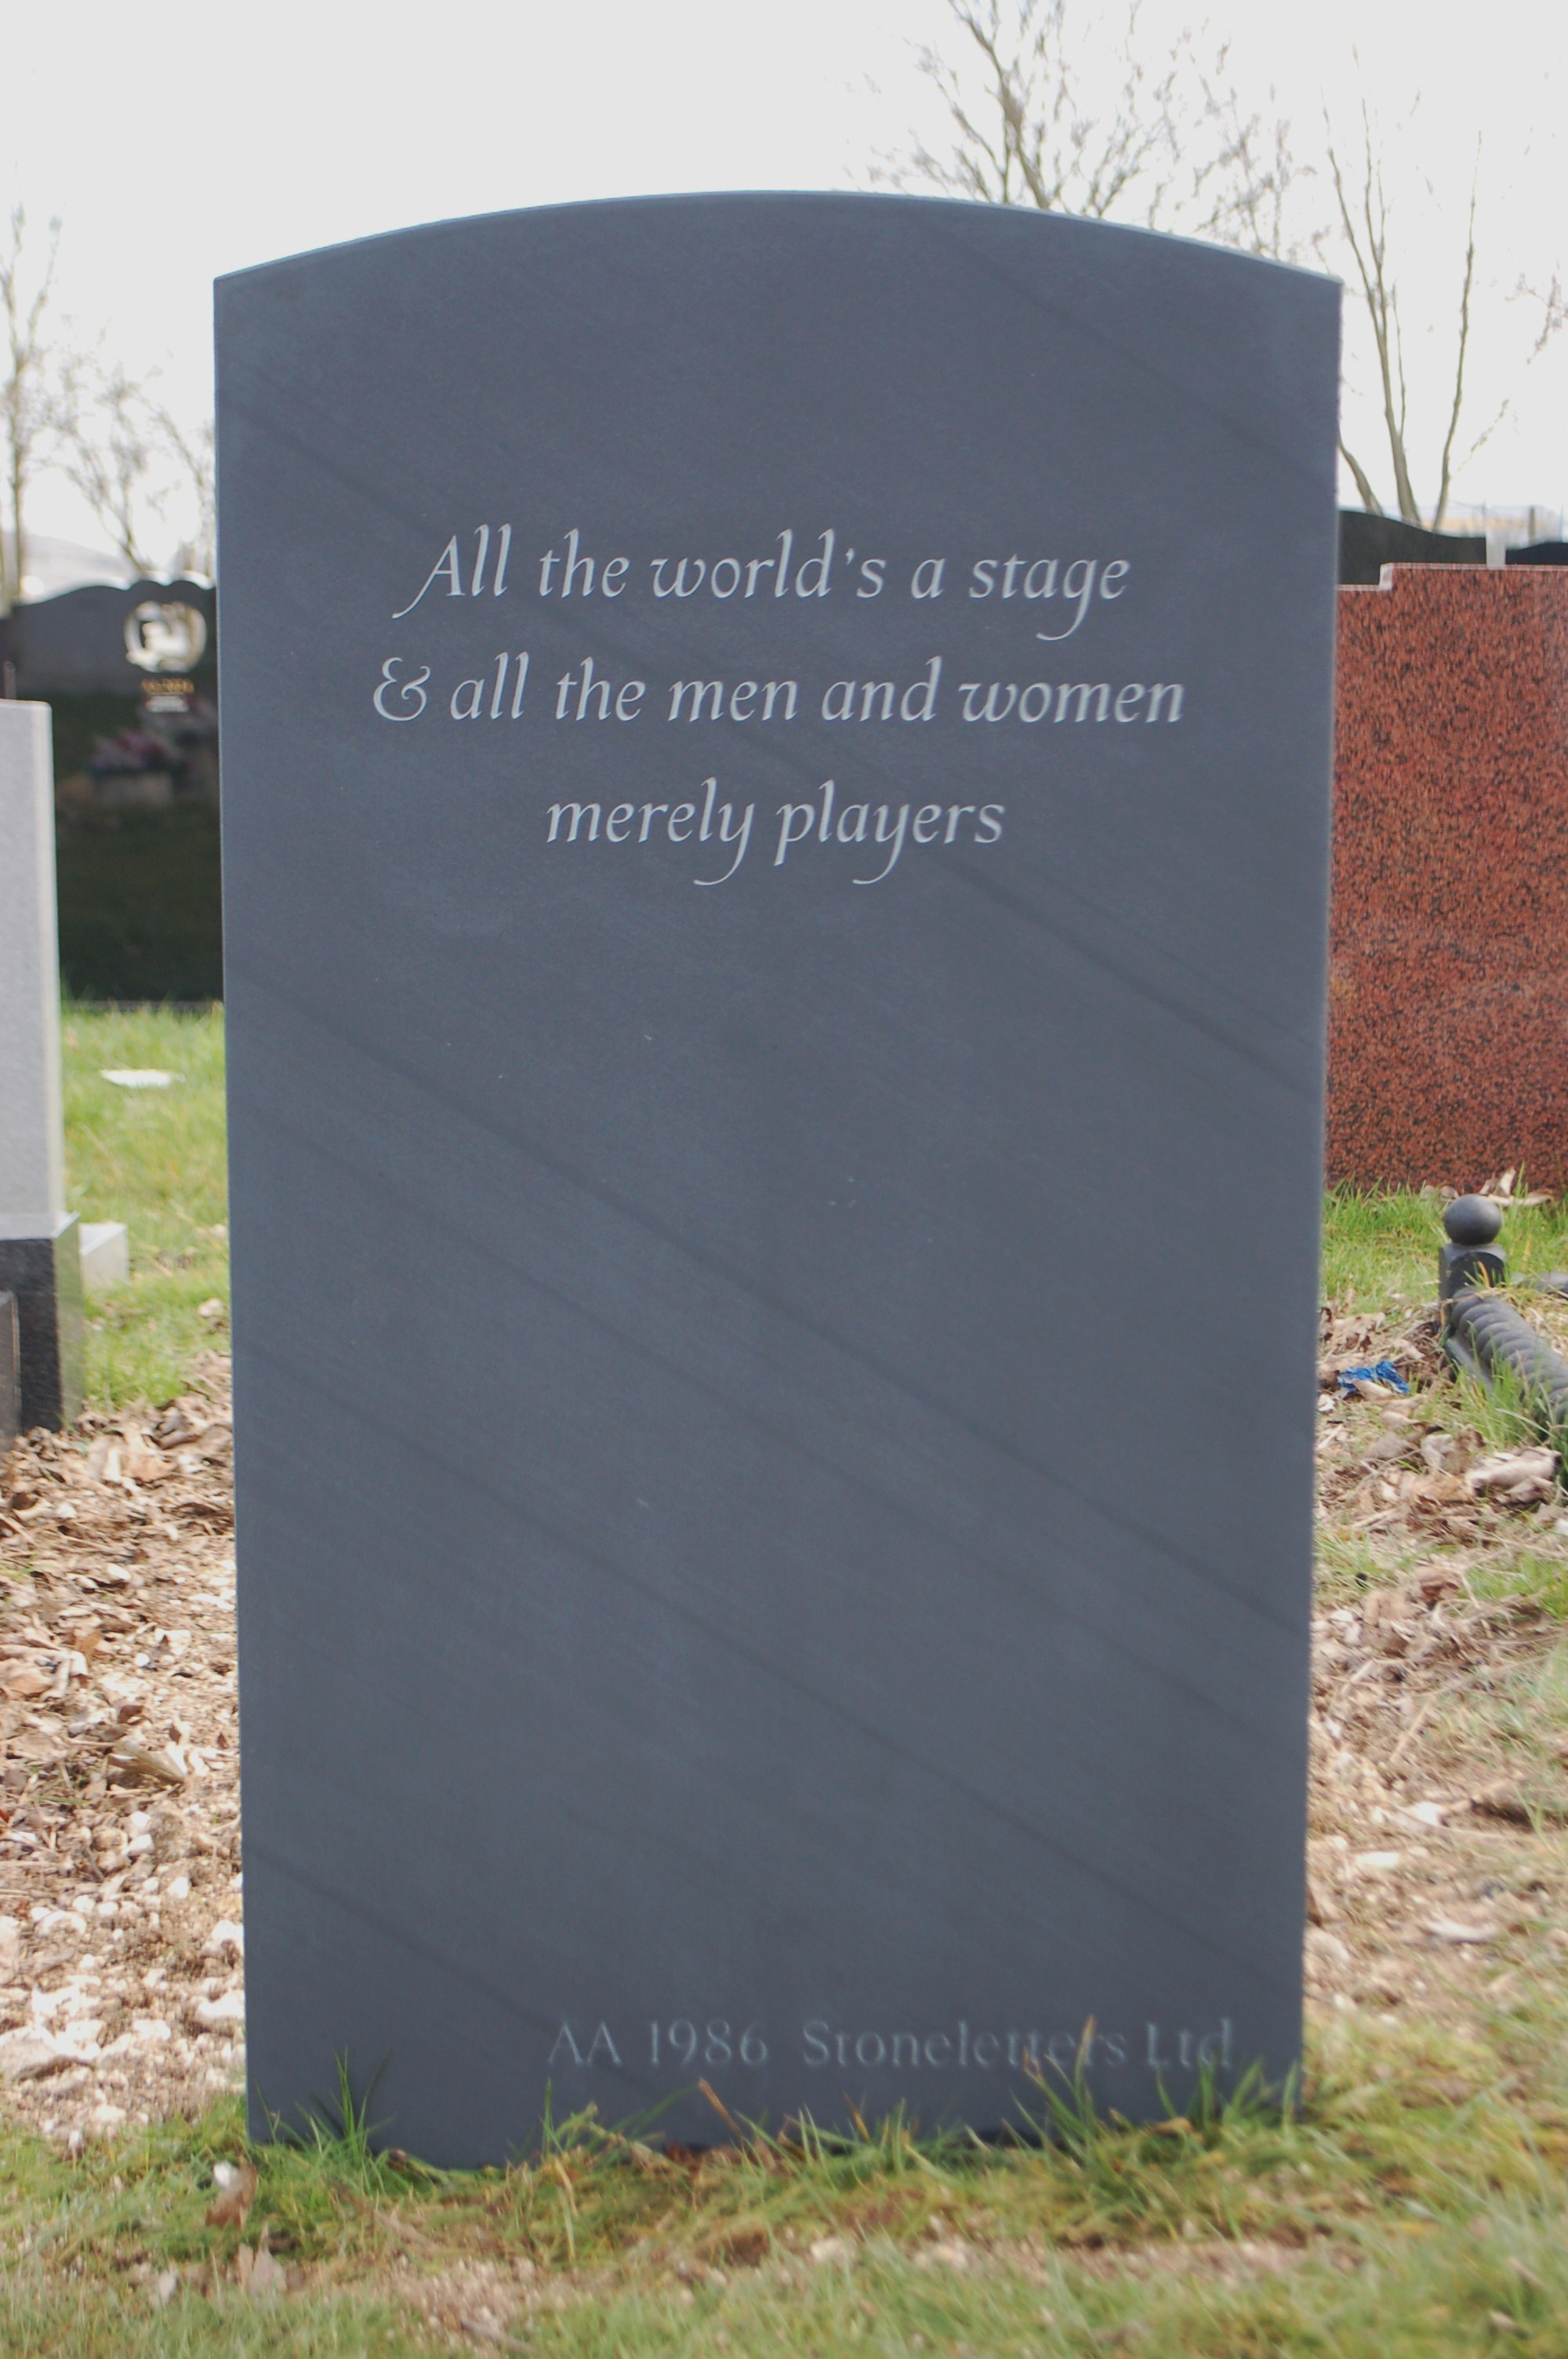 Tasteful memorial quotes and headstone epitaphs blog stoneletters headstone epitaphs 150 beautiful examples izmirmasajfo Image collections